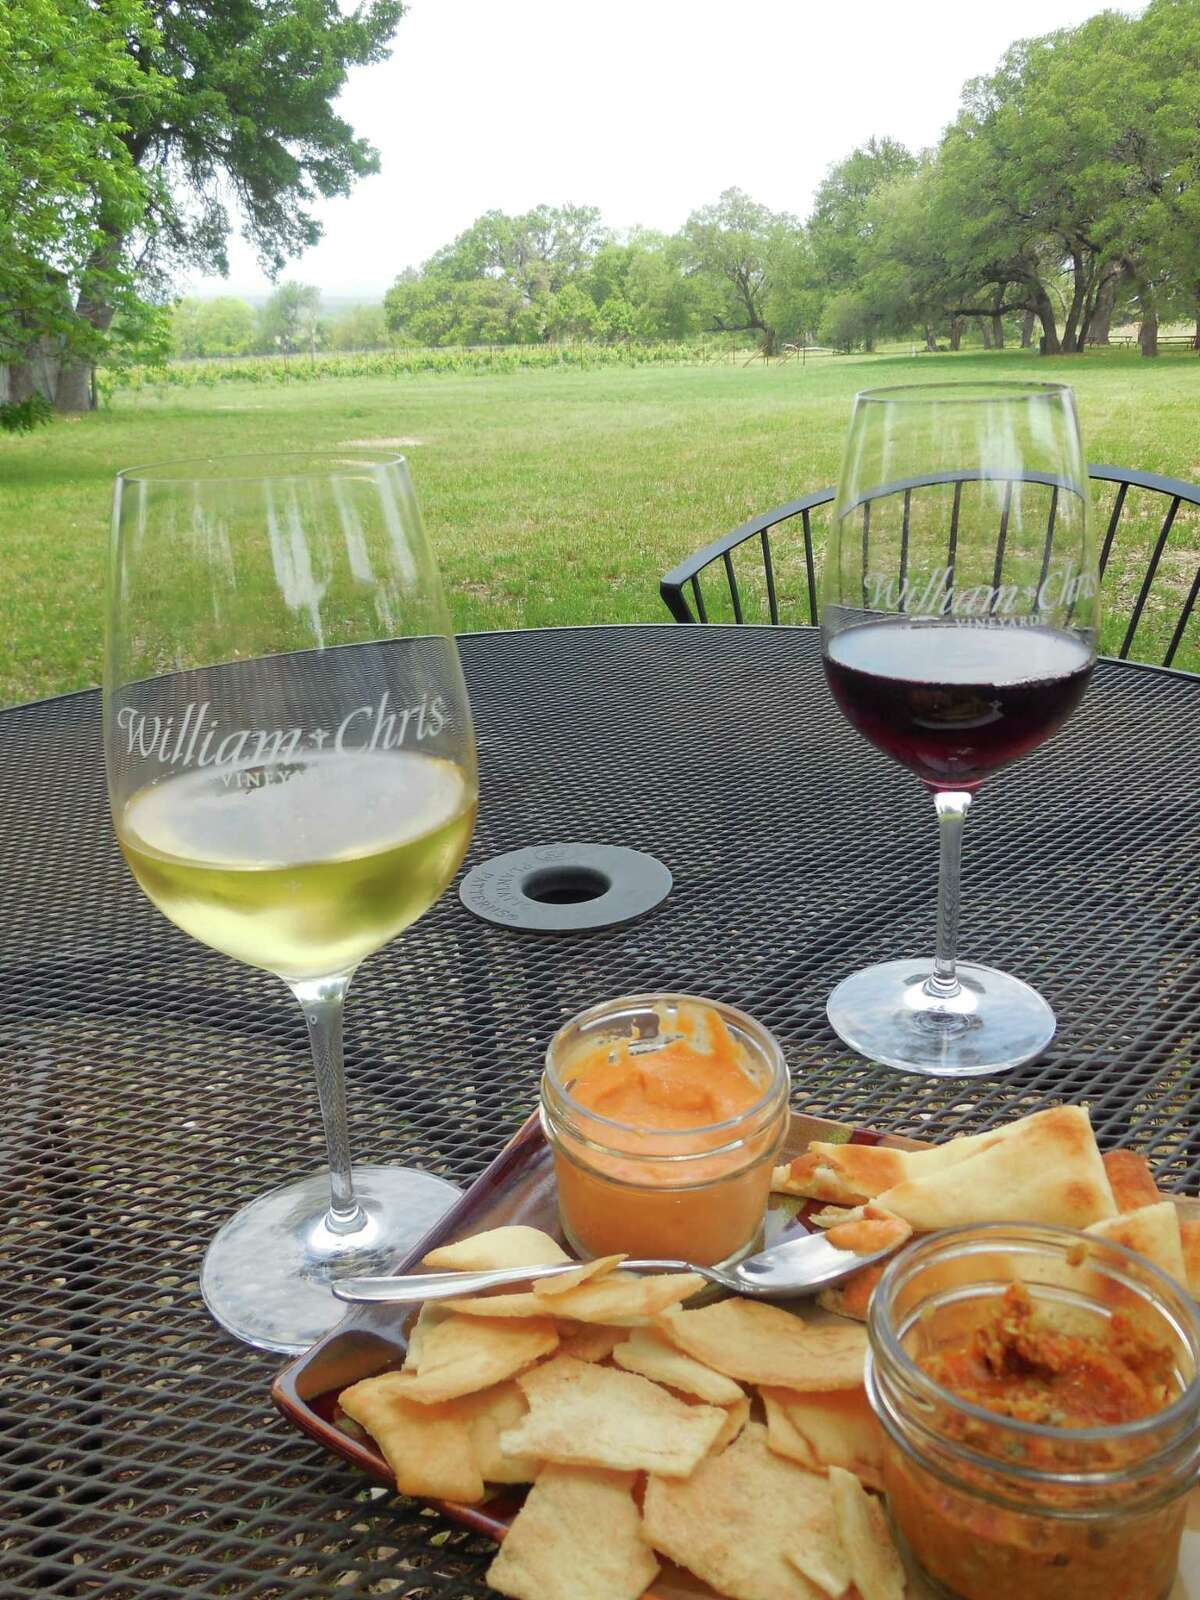 Tables on the lawn at William Chris Vineyards give guests a chance to enjoy snacks with wine from the Vineyards in Hye, on U.S. 290 between Johnson City and Fredericksburg.